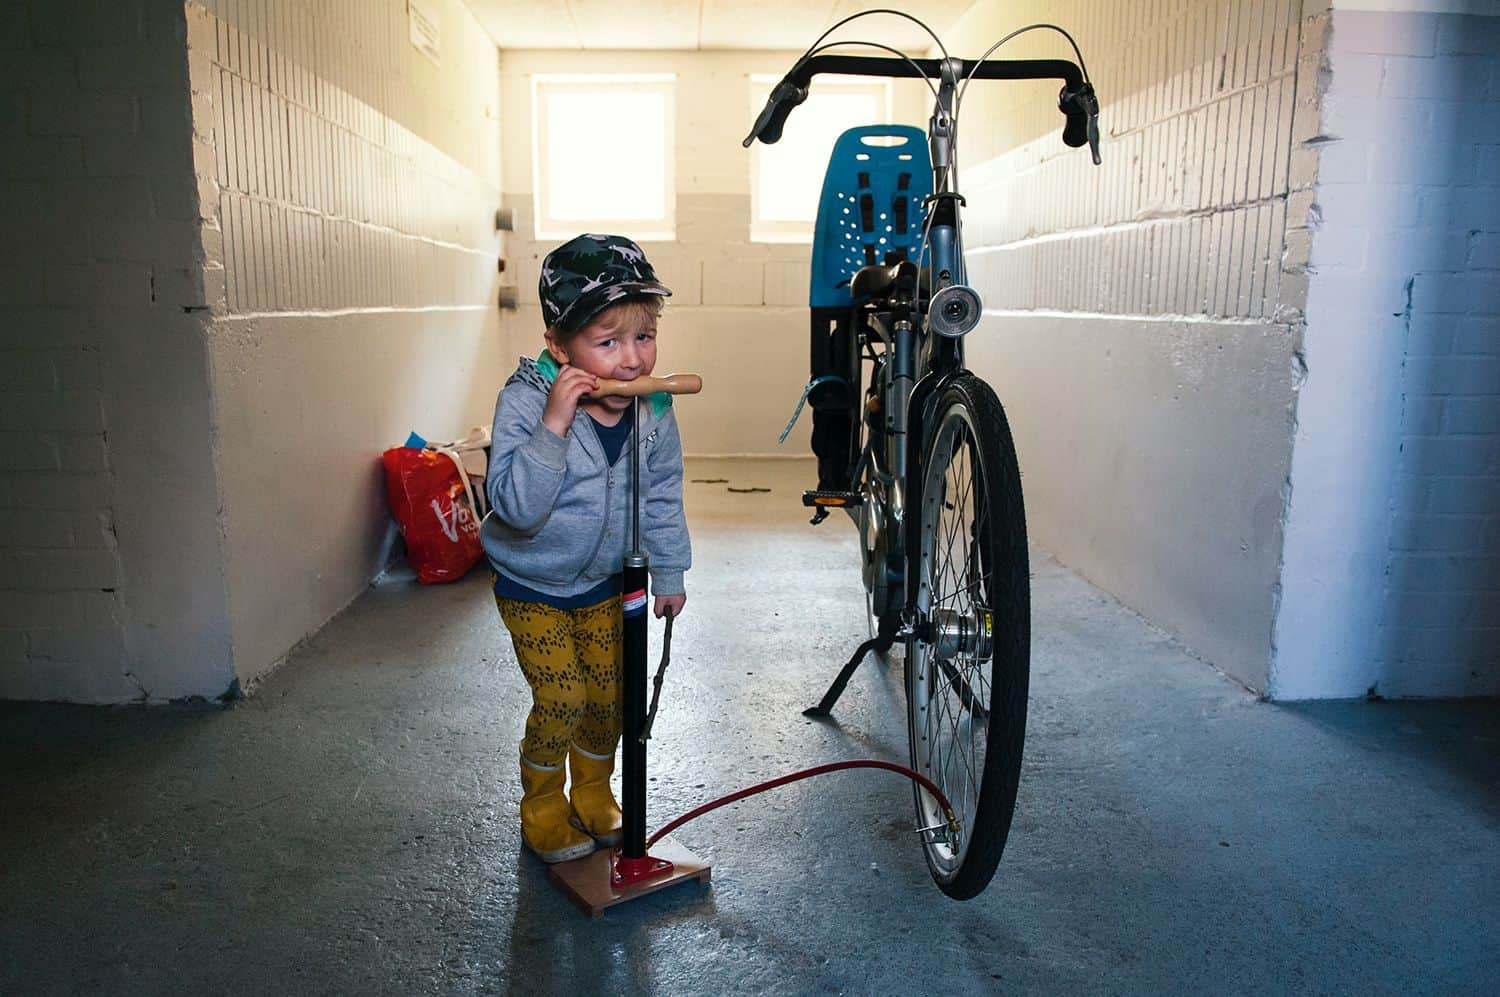 A little boy rests his mouth on the handle of the air pump he's using to inflate his bicycle tire